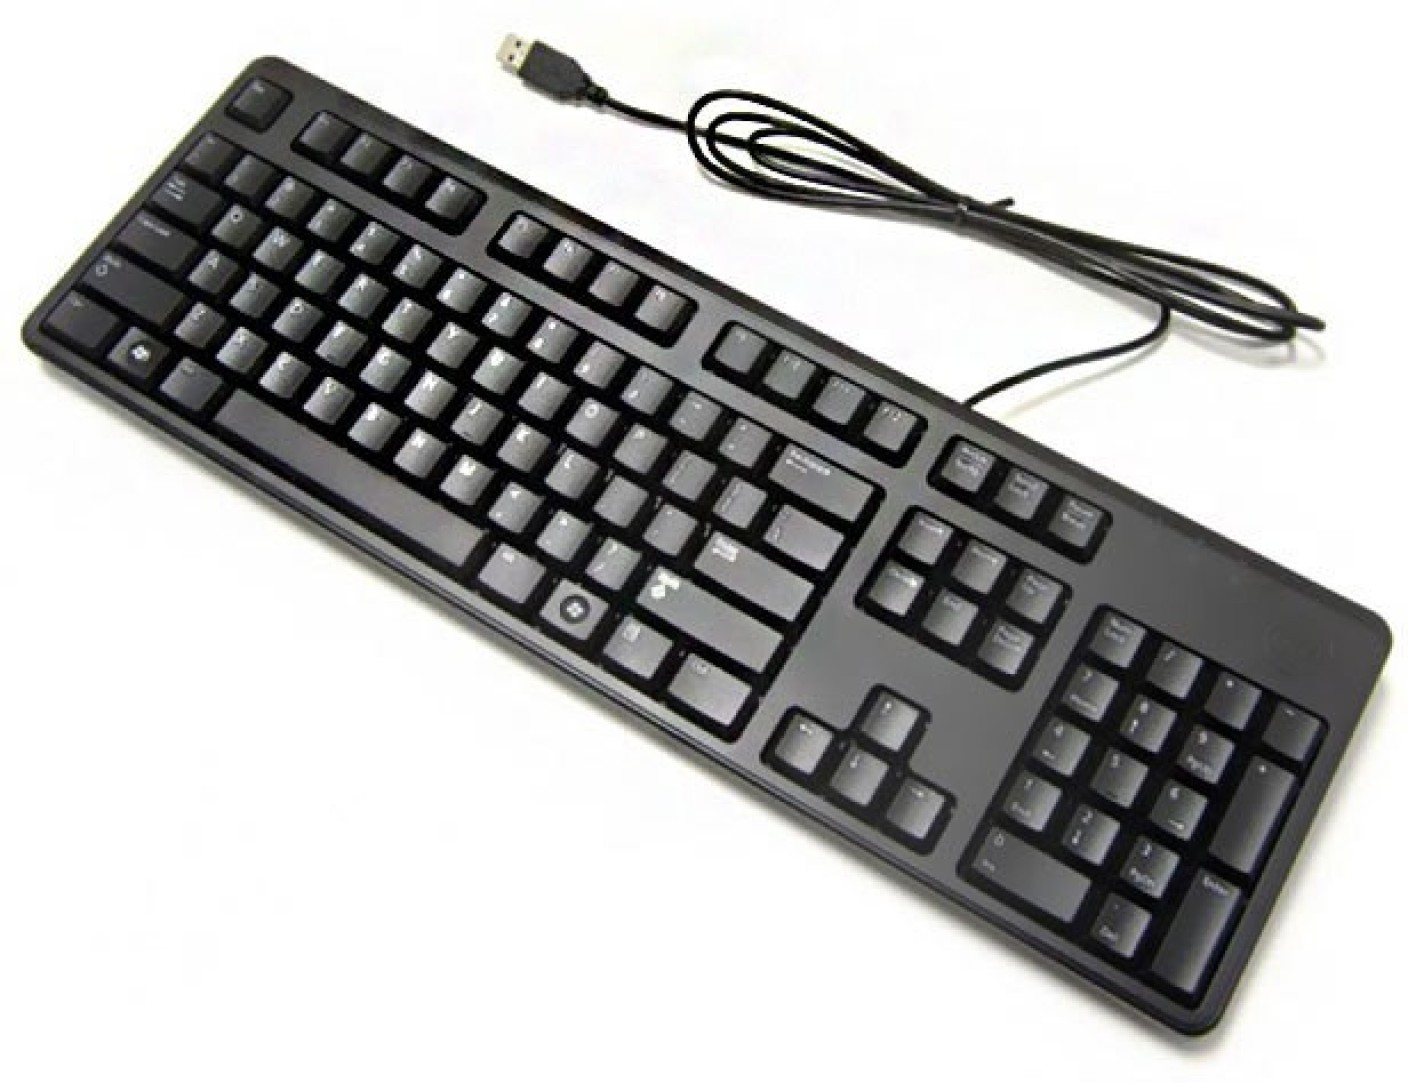 dell kb212 wired usb keyboard dell. Black Bedroom Furniture Sets. Home Design Ideas